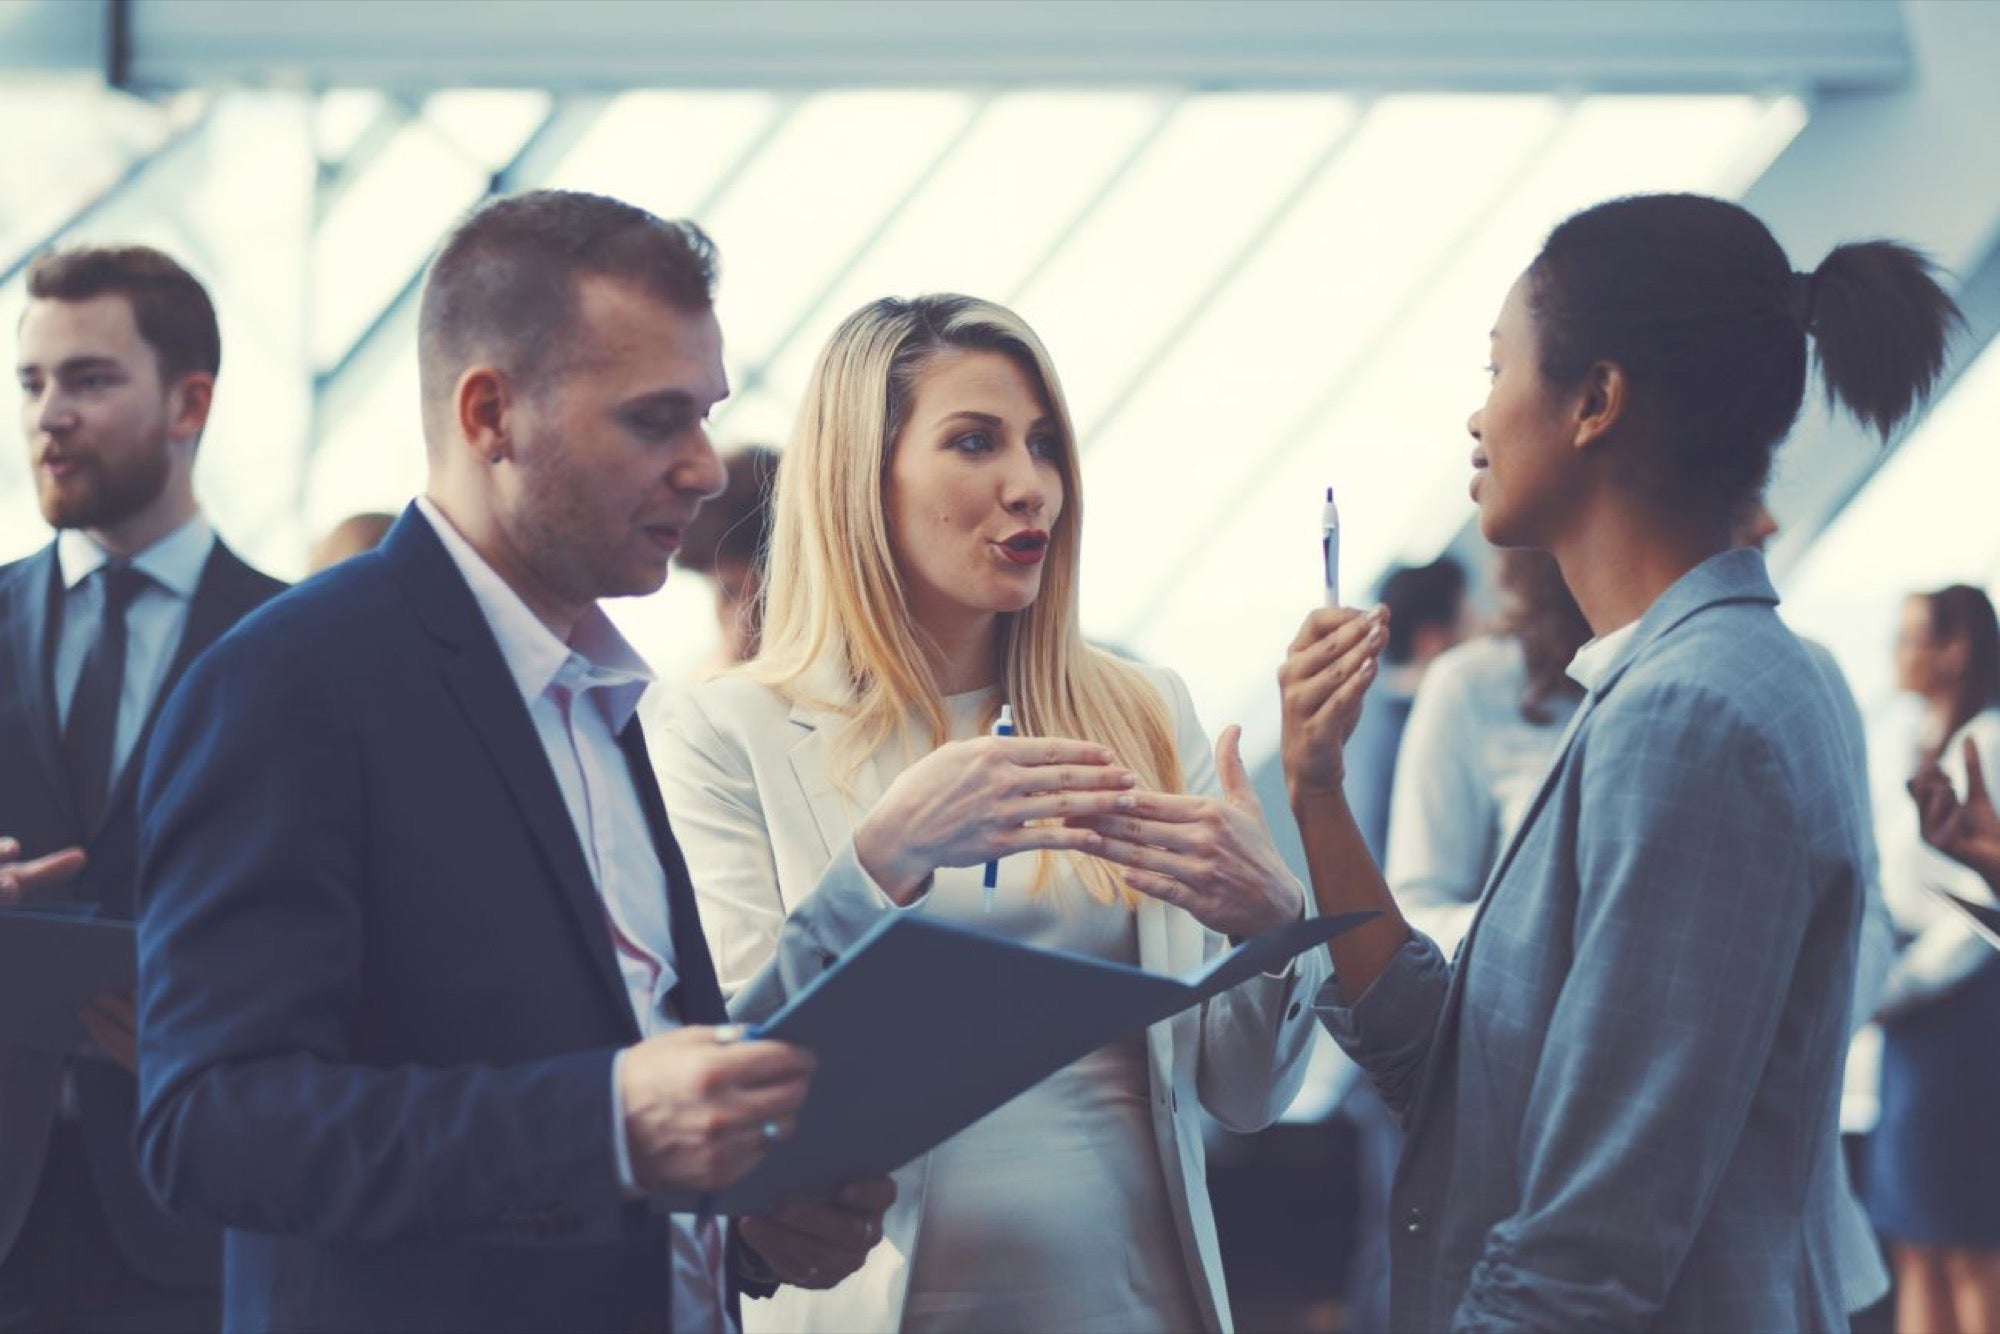 How To Network To Improve Your Career